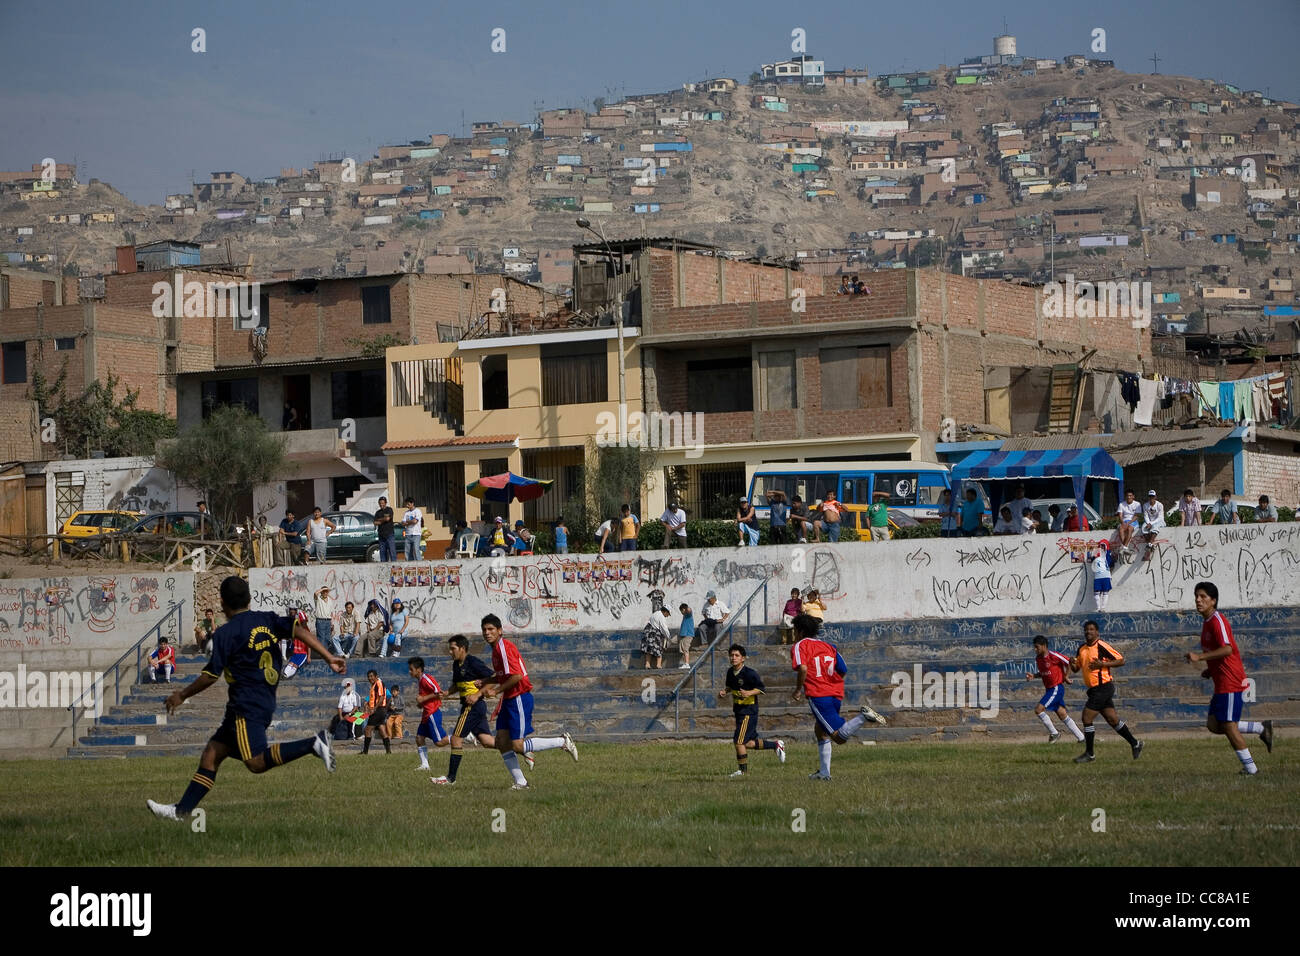 A football team competes on the pitch in Lima, Peru, South America. - Stock Image